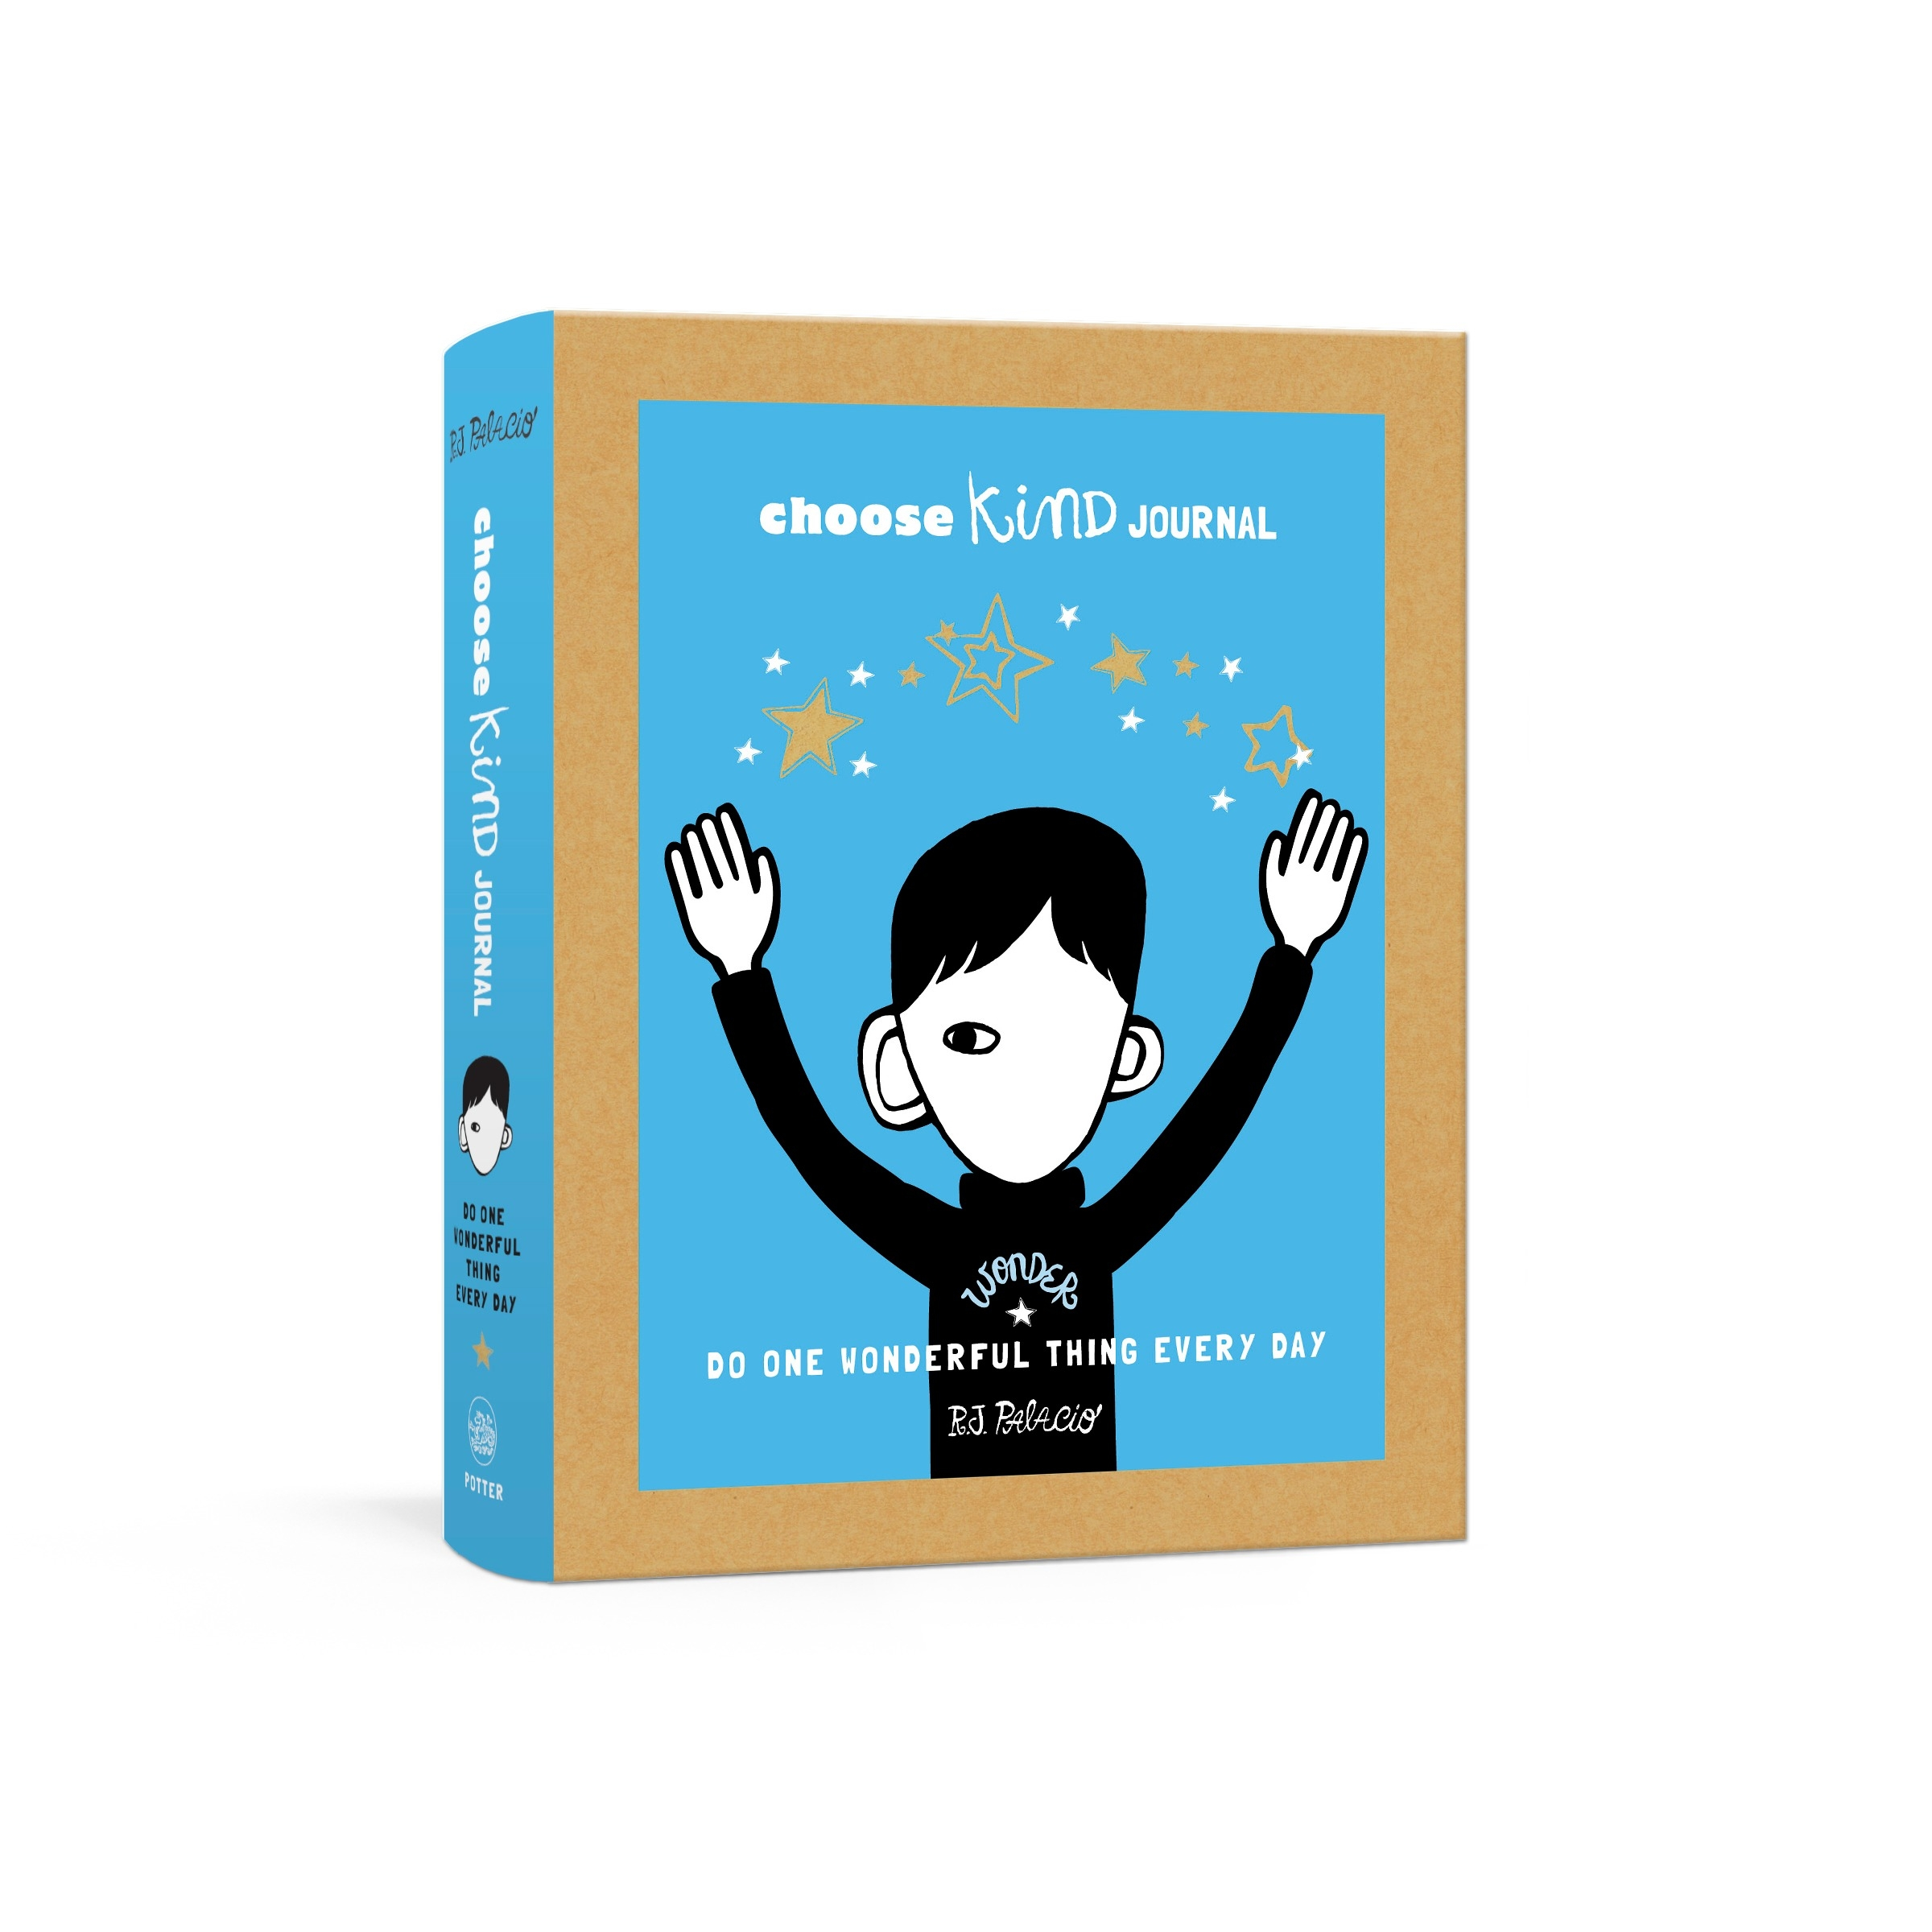 Choose Kind Journal: Do One Wonderful Thing Every Day (Wonder Journal) by R. J. Palacio, ISBN: 9781524759421